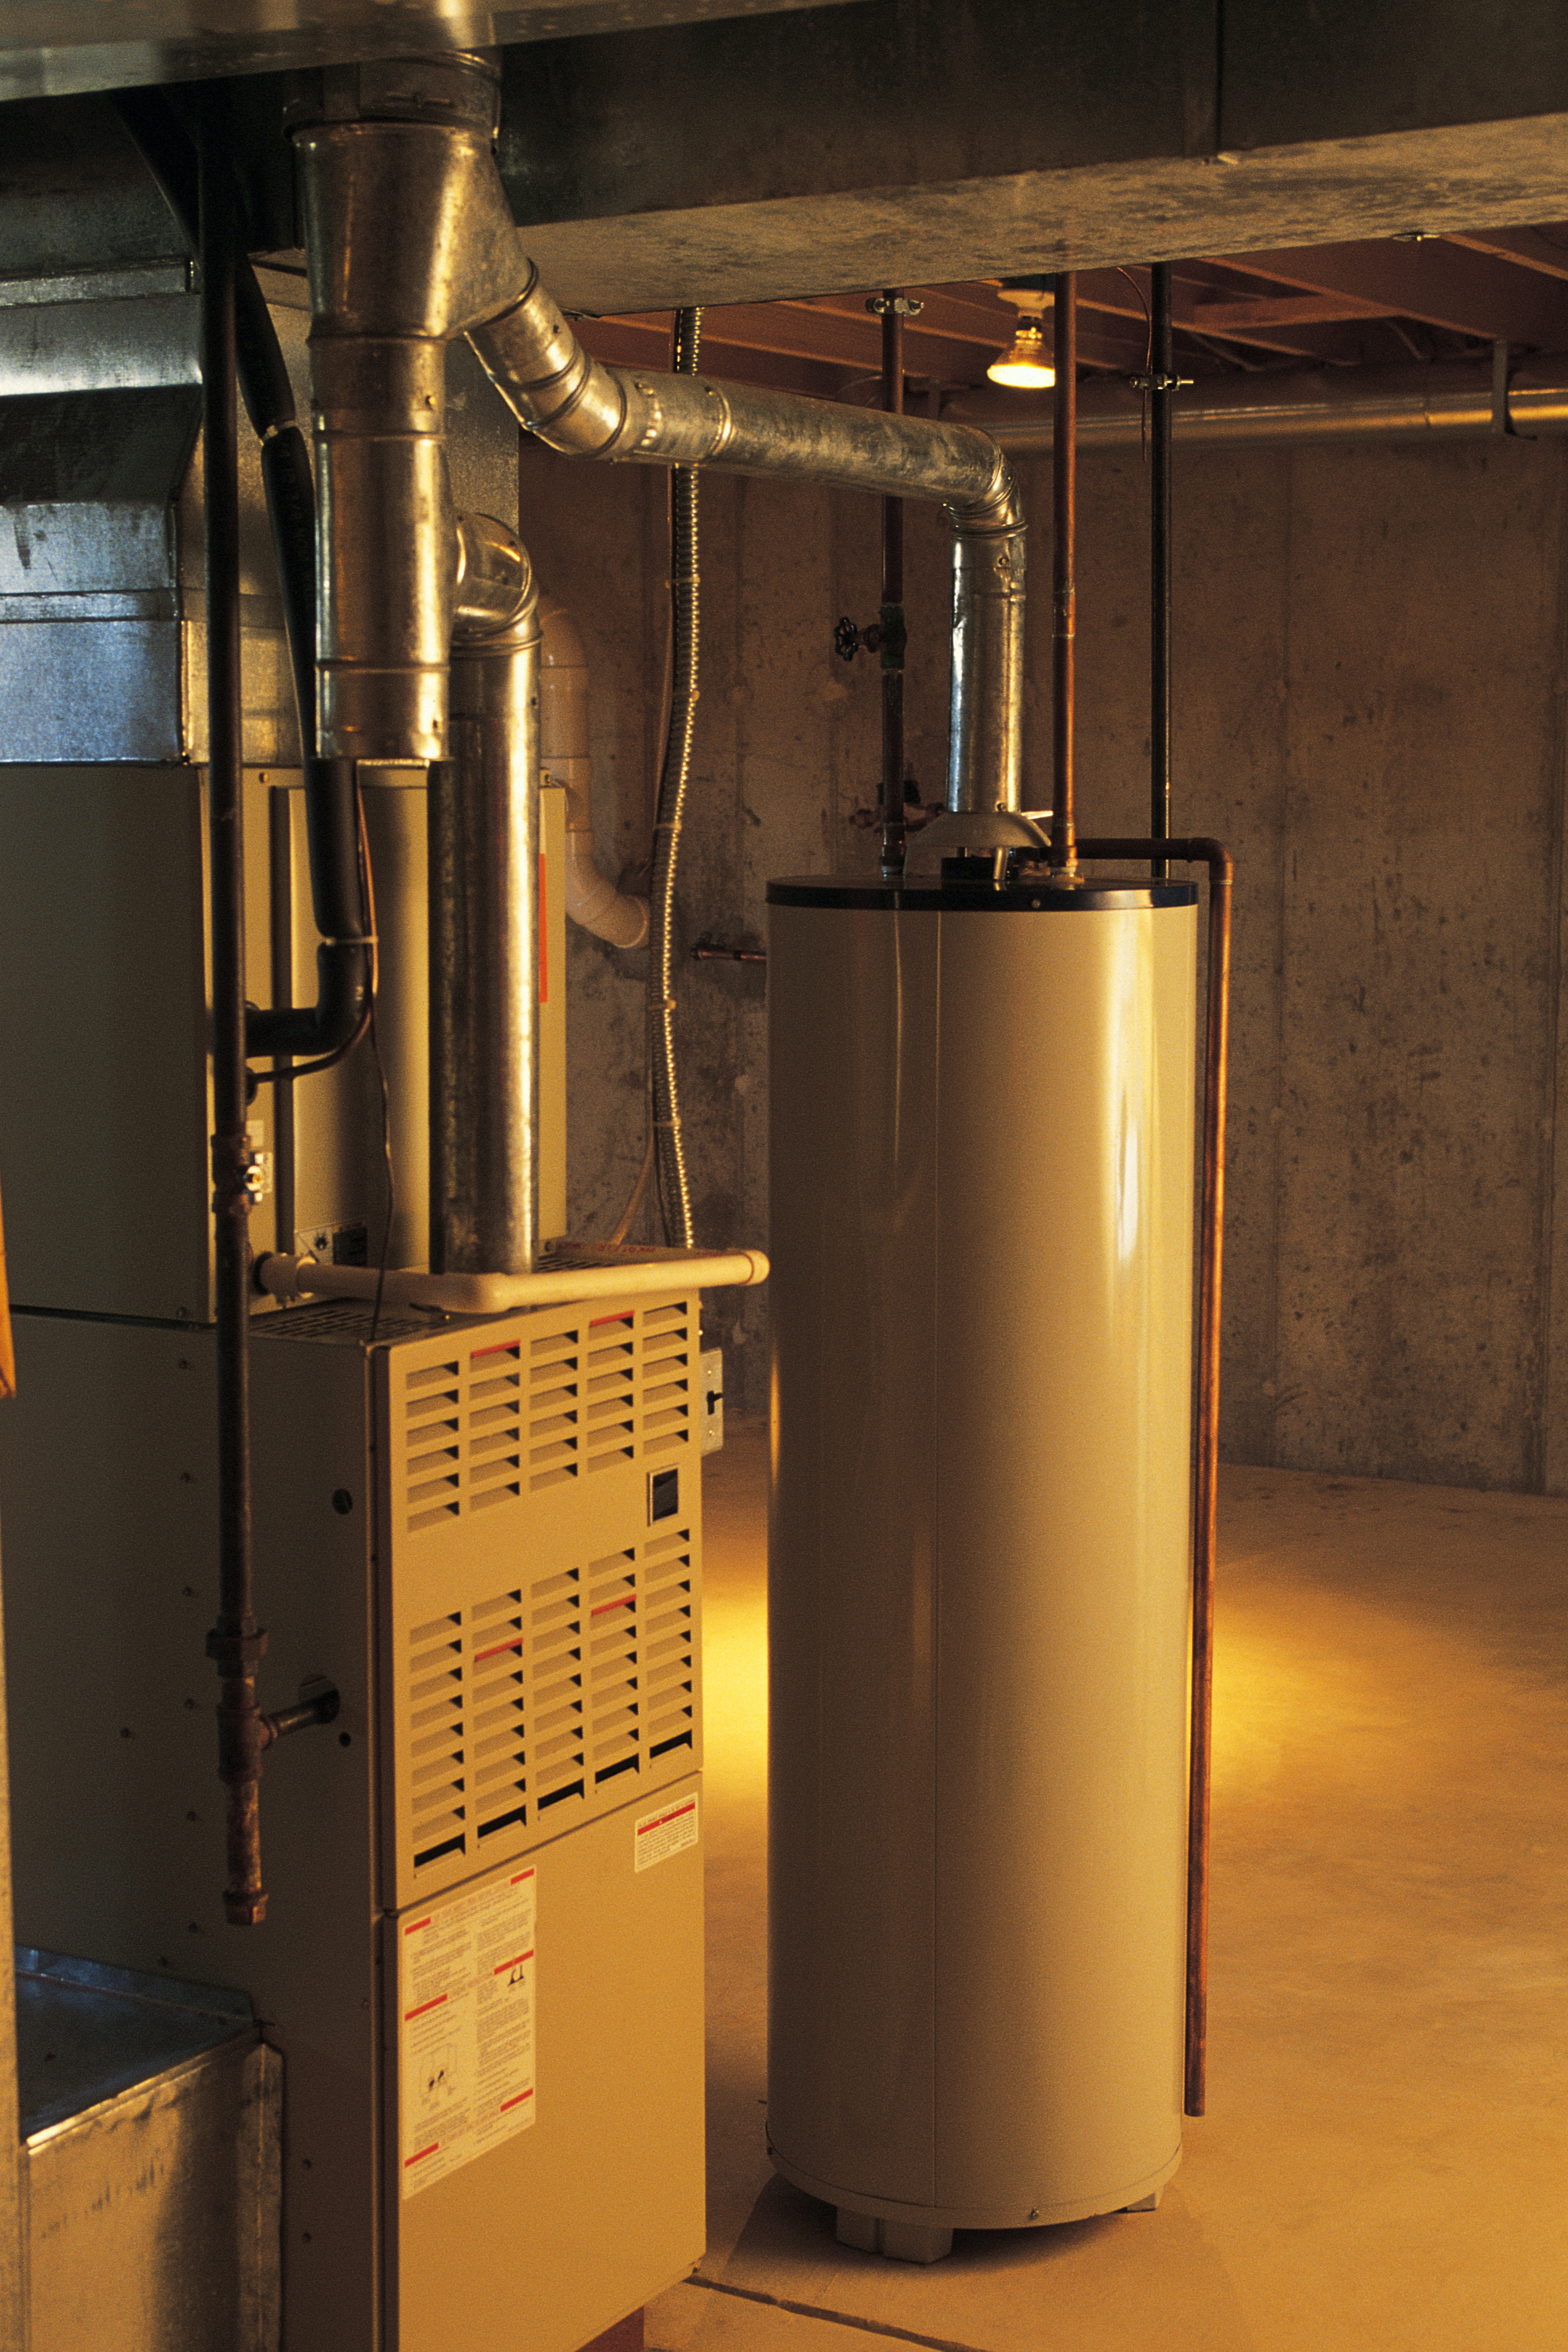 What Happens When a Furnace Inducer Goes Out?